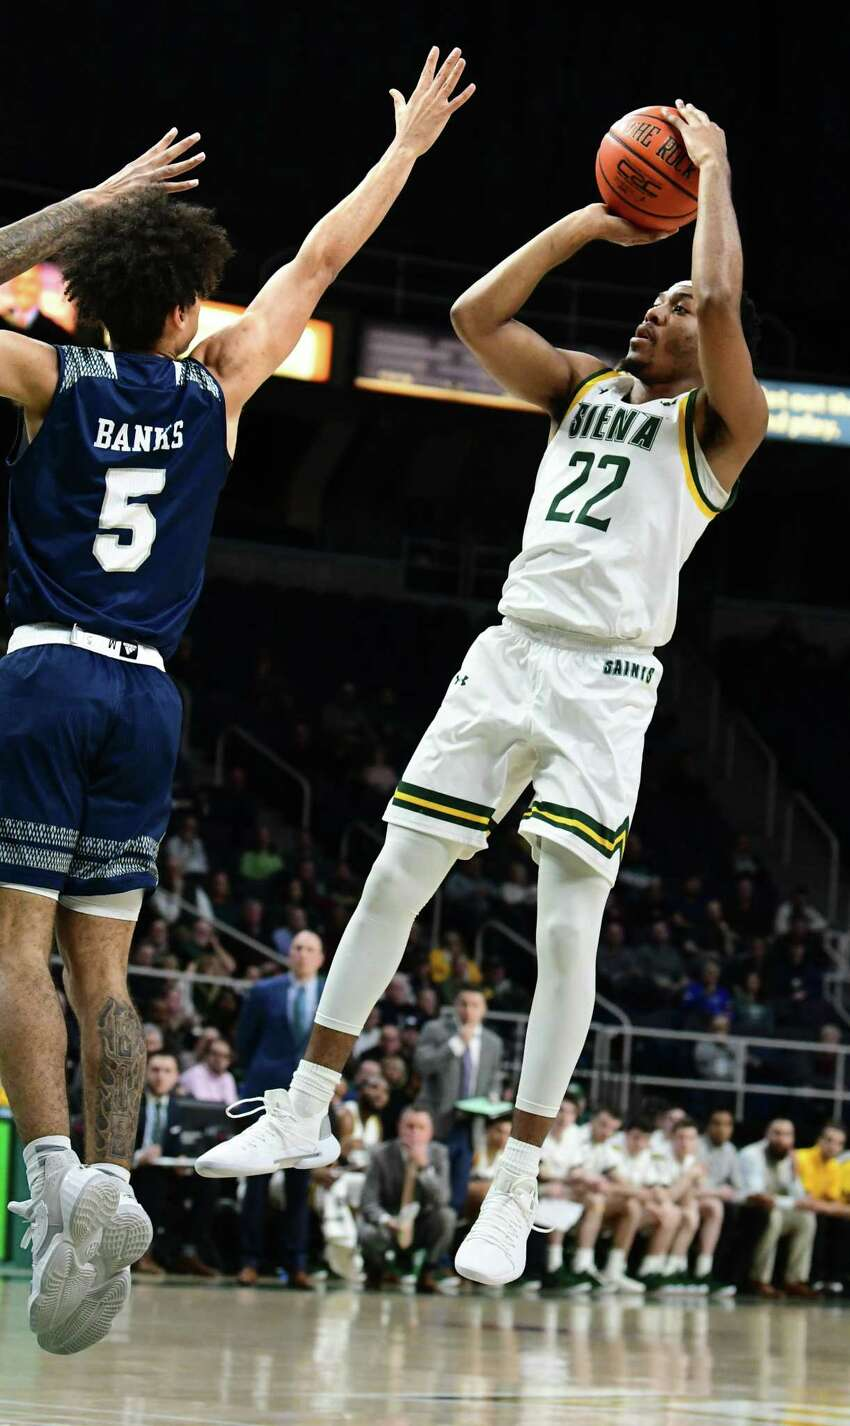 Siena's Jalen Pickett puts up a jumper during a game against Saint Peter's at the Times Union Center on Thursday, Jan. 9, 2020 in Albany, N.Y. (Lori Van Buren/Times Union)